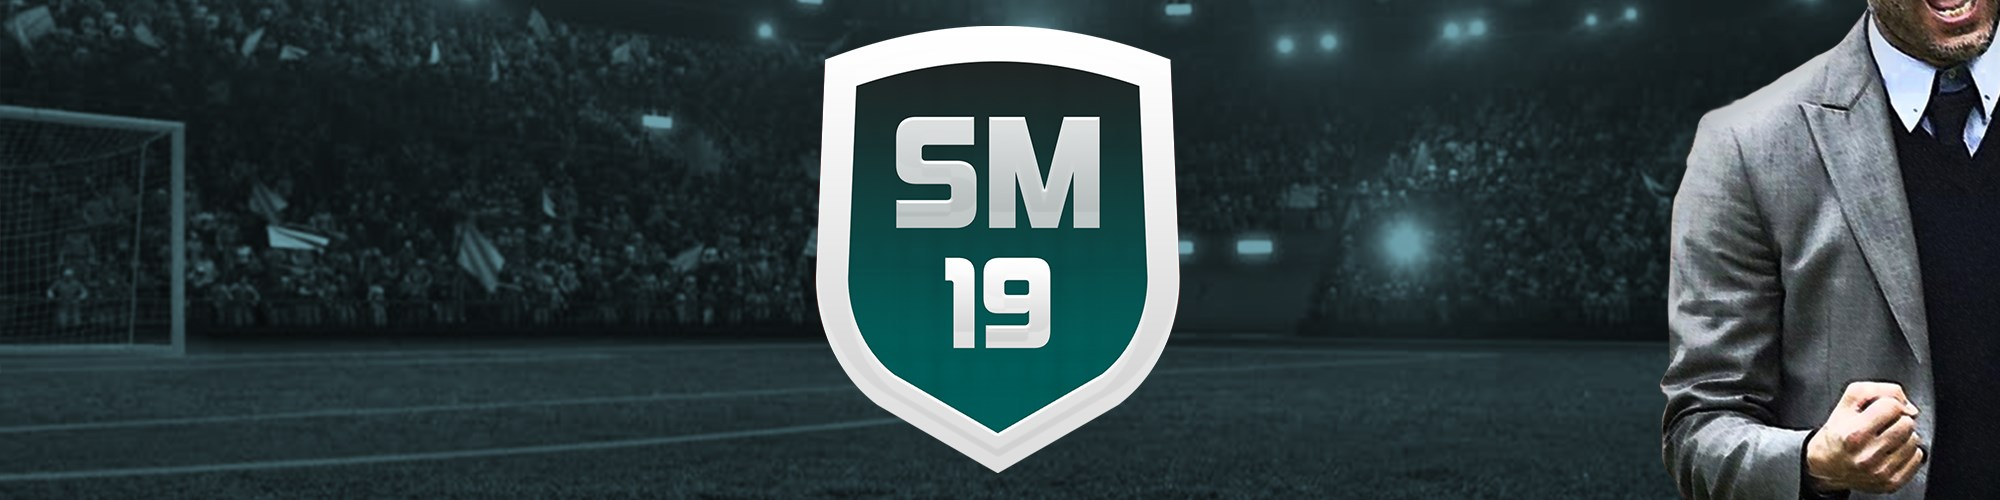 Soccer Manager 2019 banner 2000x500